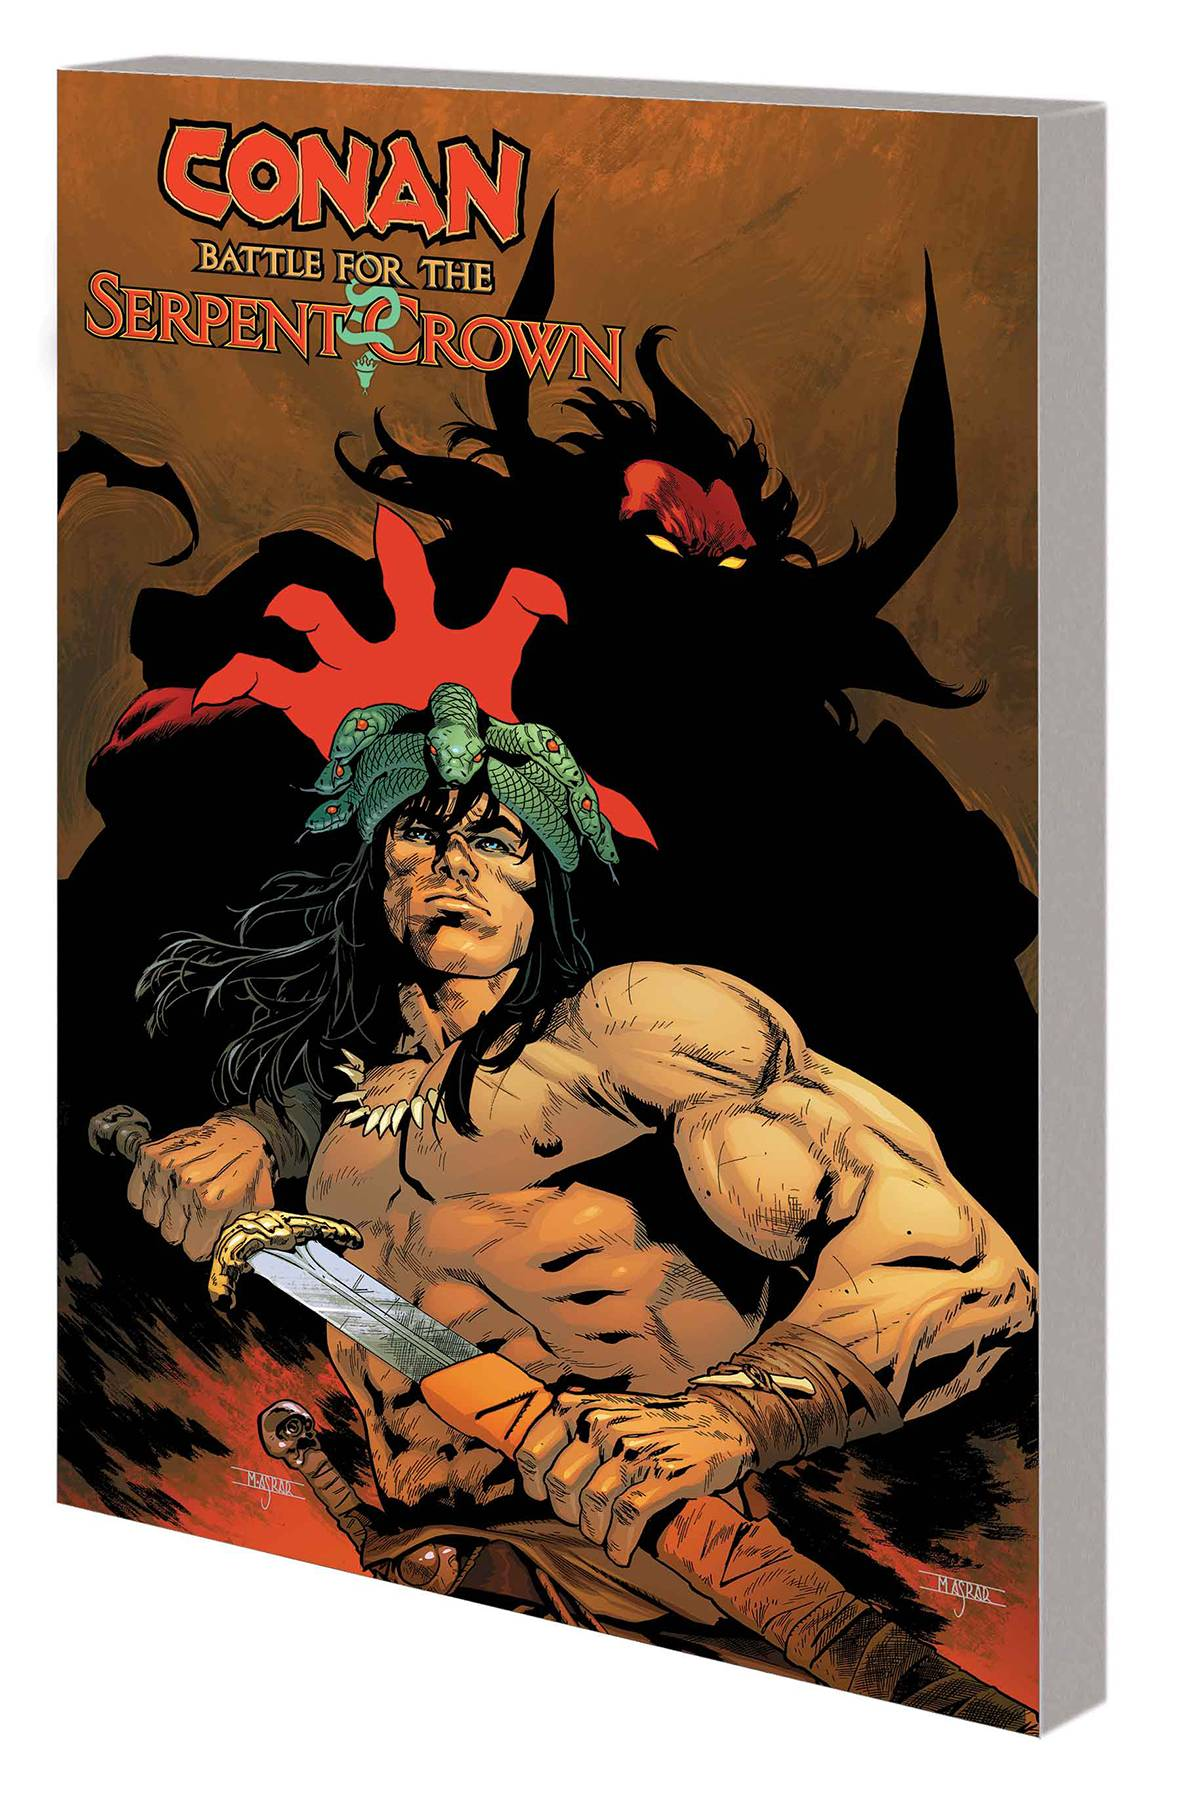 CONAN BATTLE FOR SERPENT CROWN TP